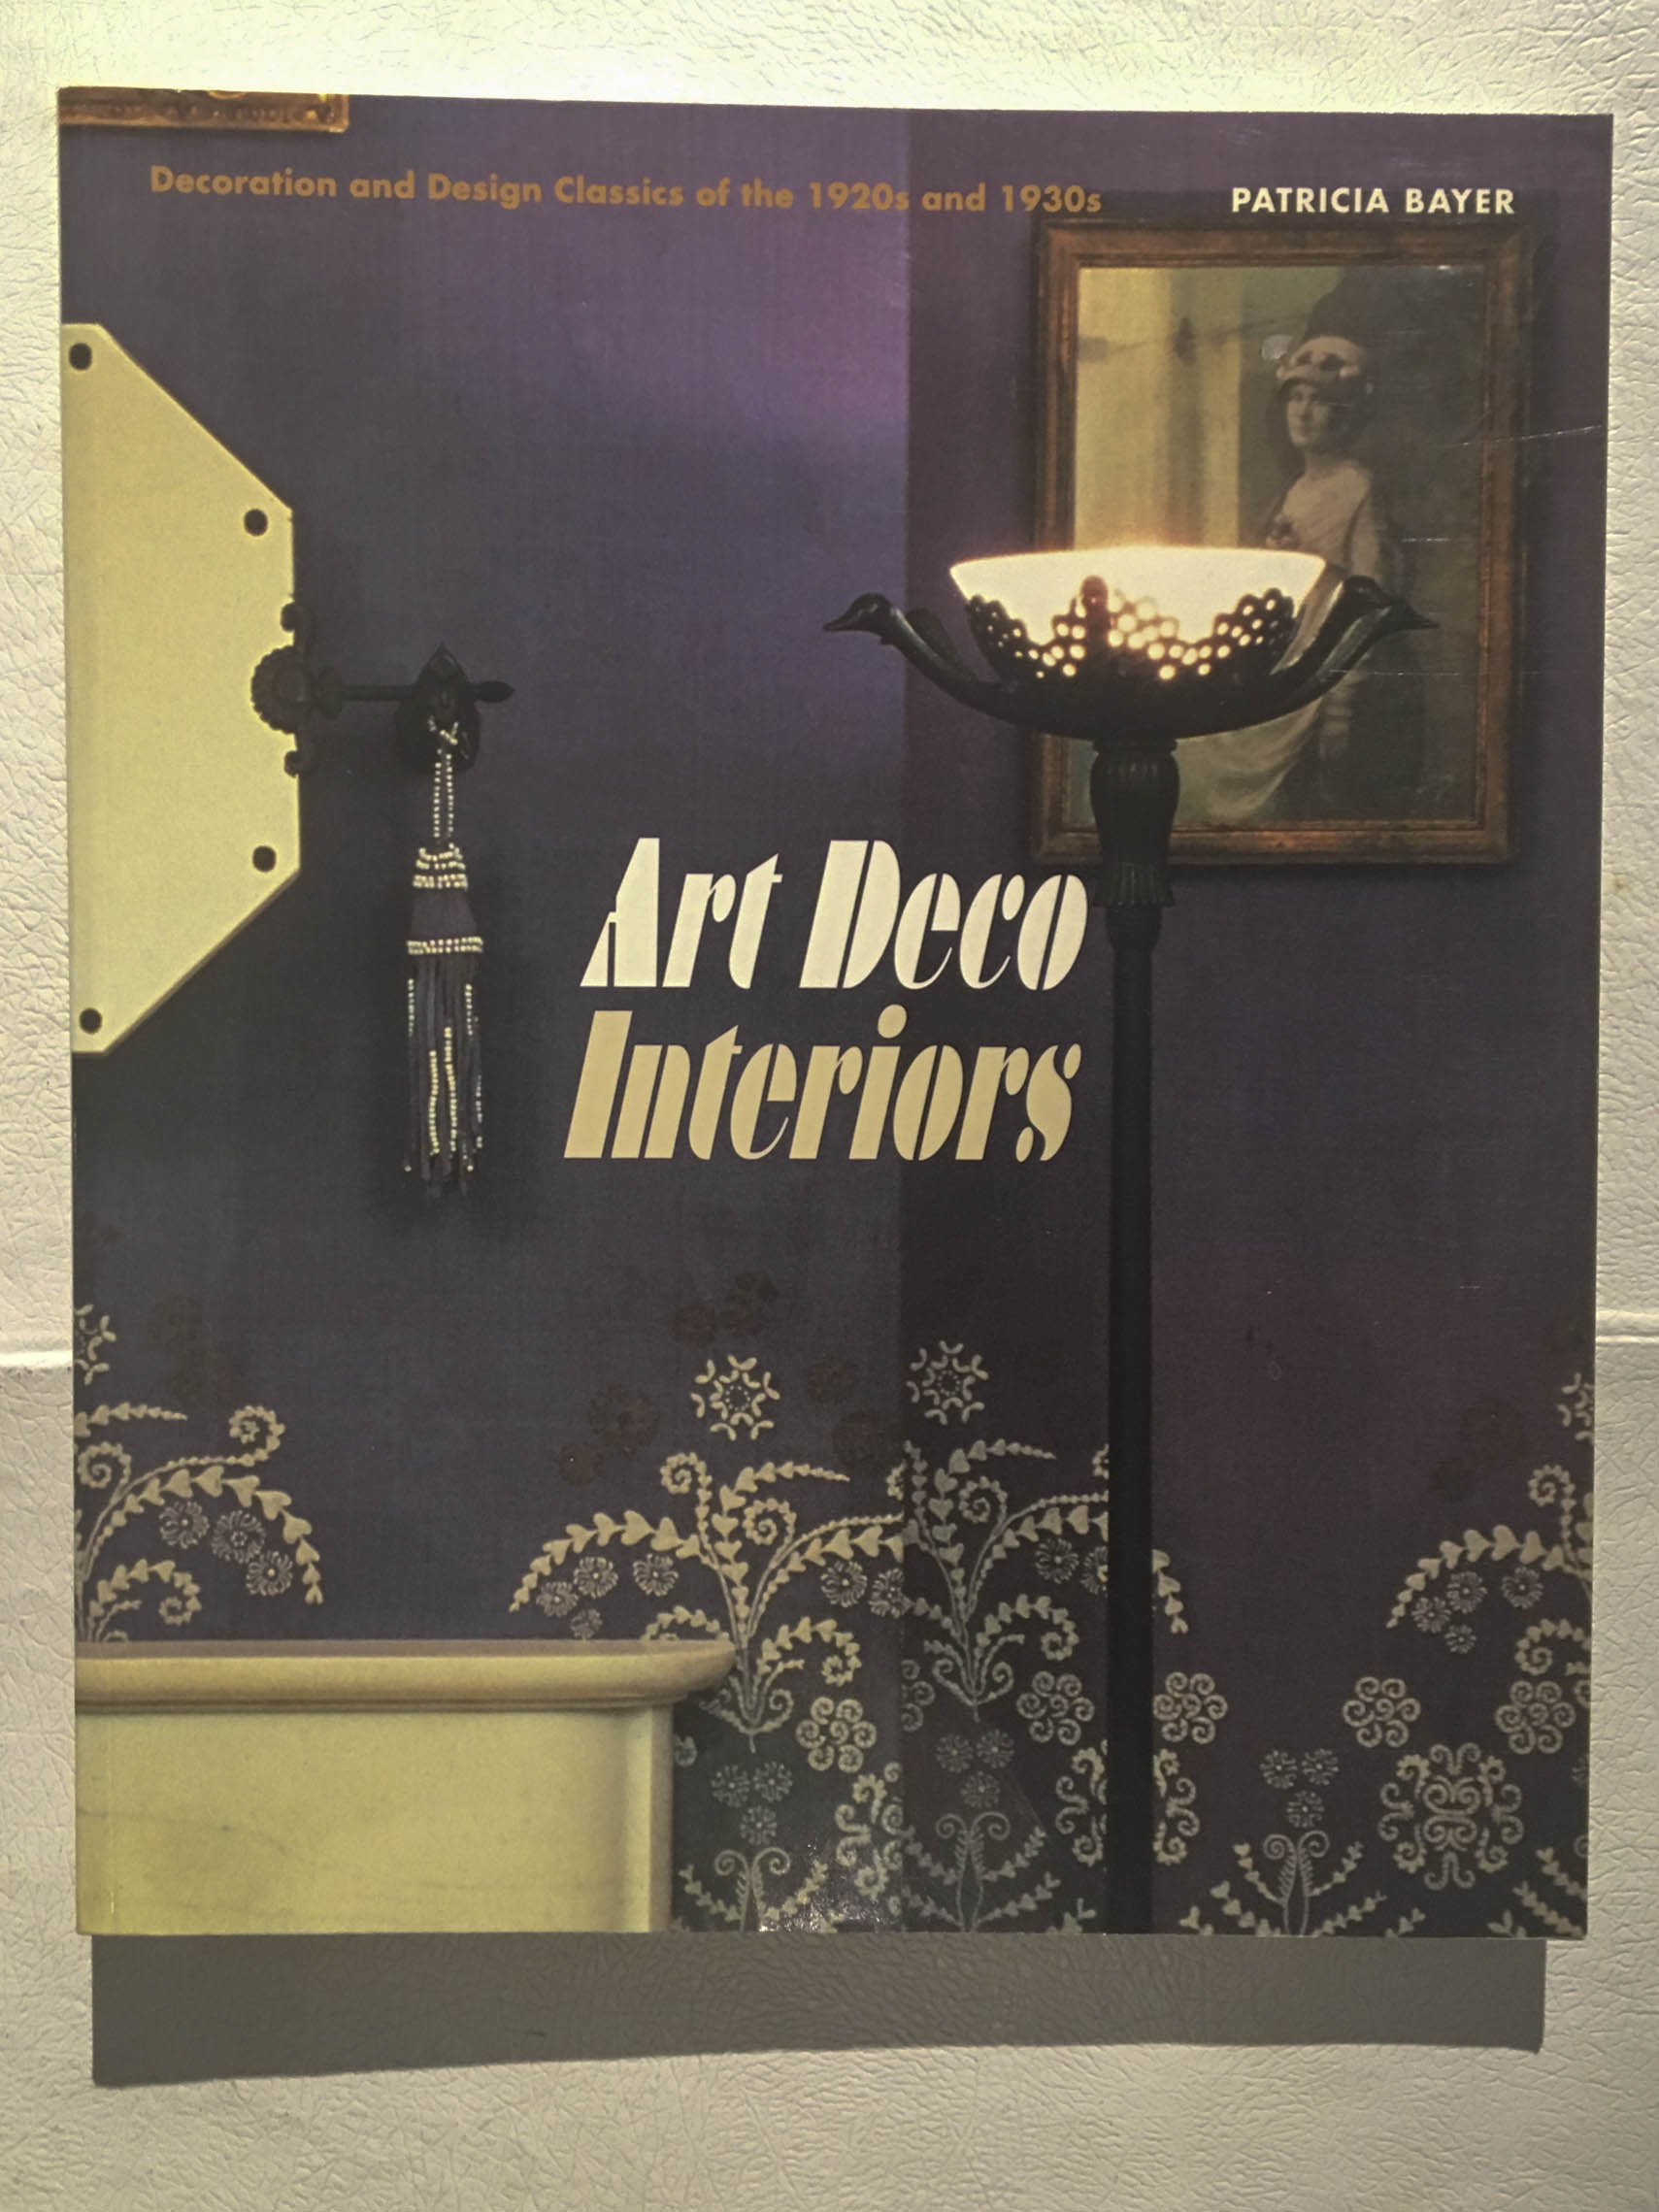 Decoration Art Deco Art Deco Interiors Decoration And Design Classics Of The 1920 S And 1930 S